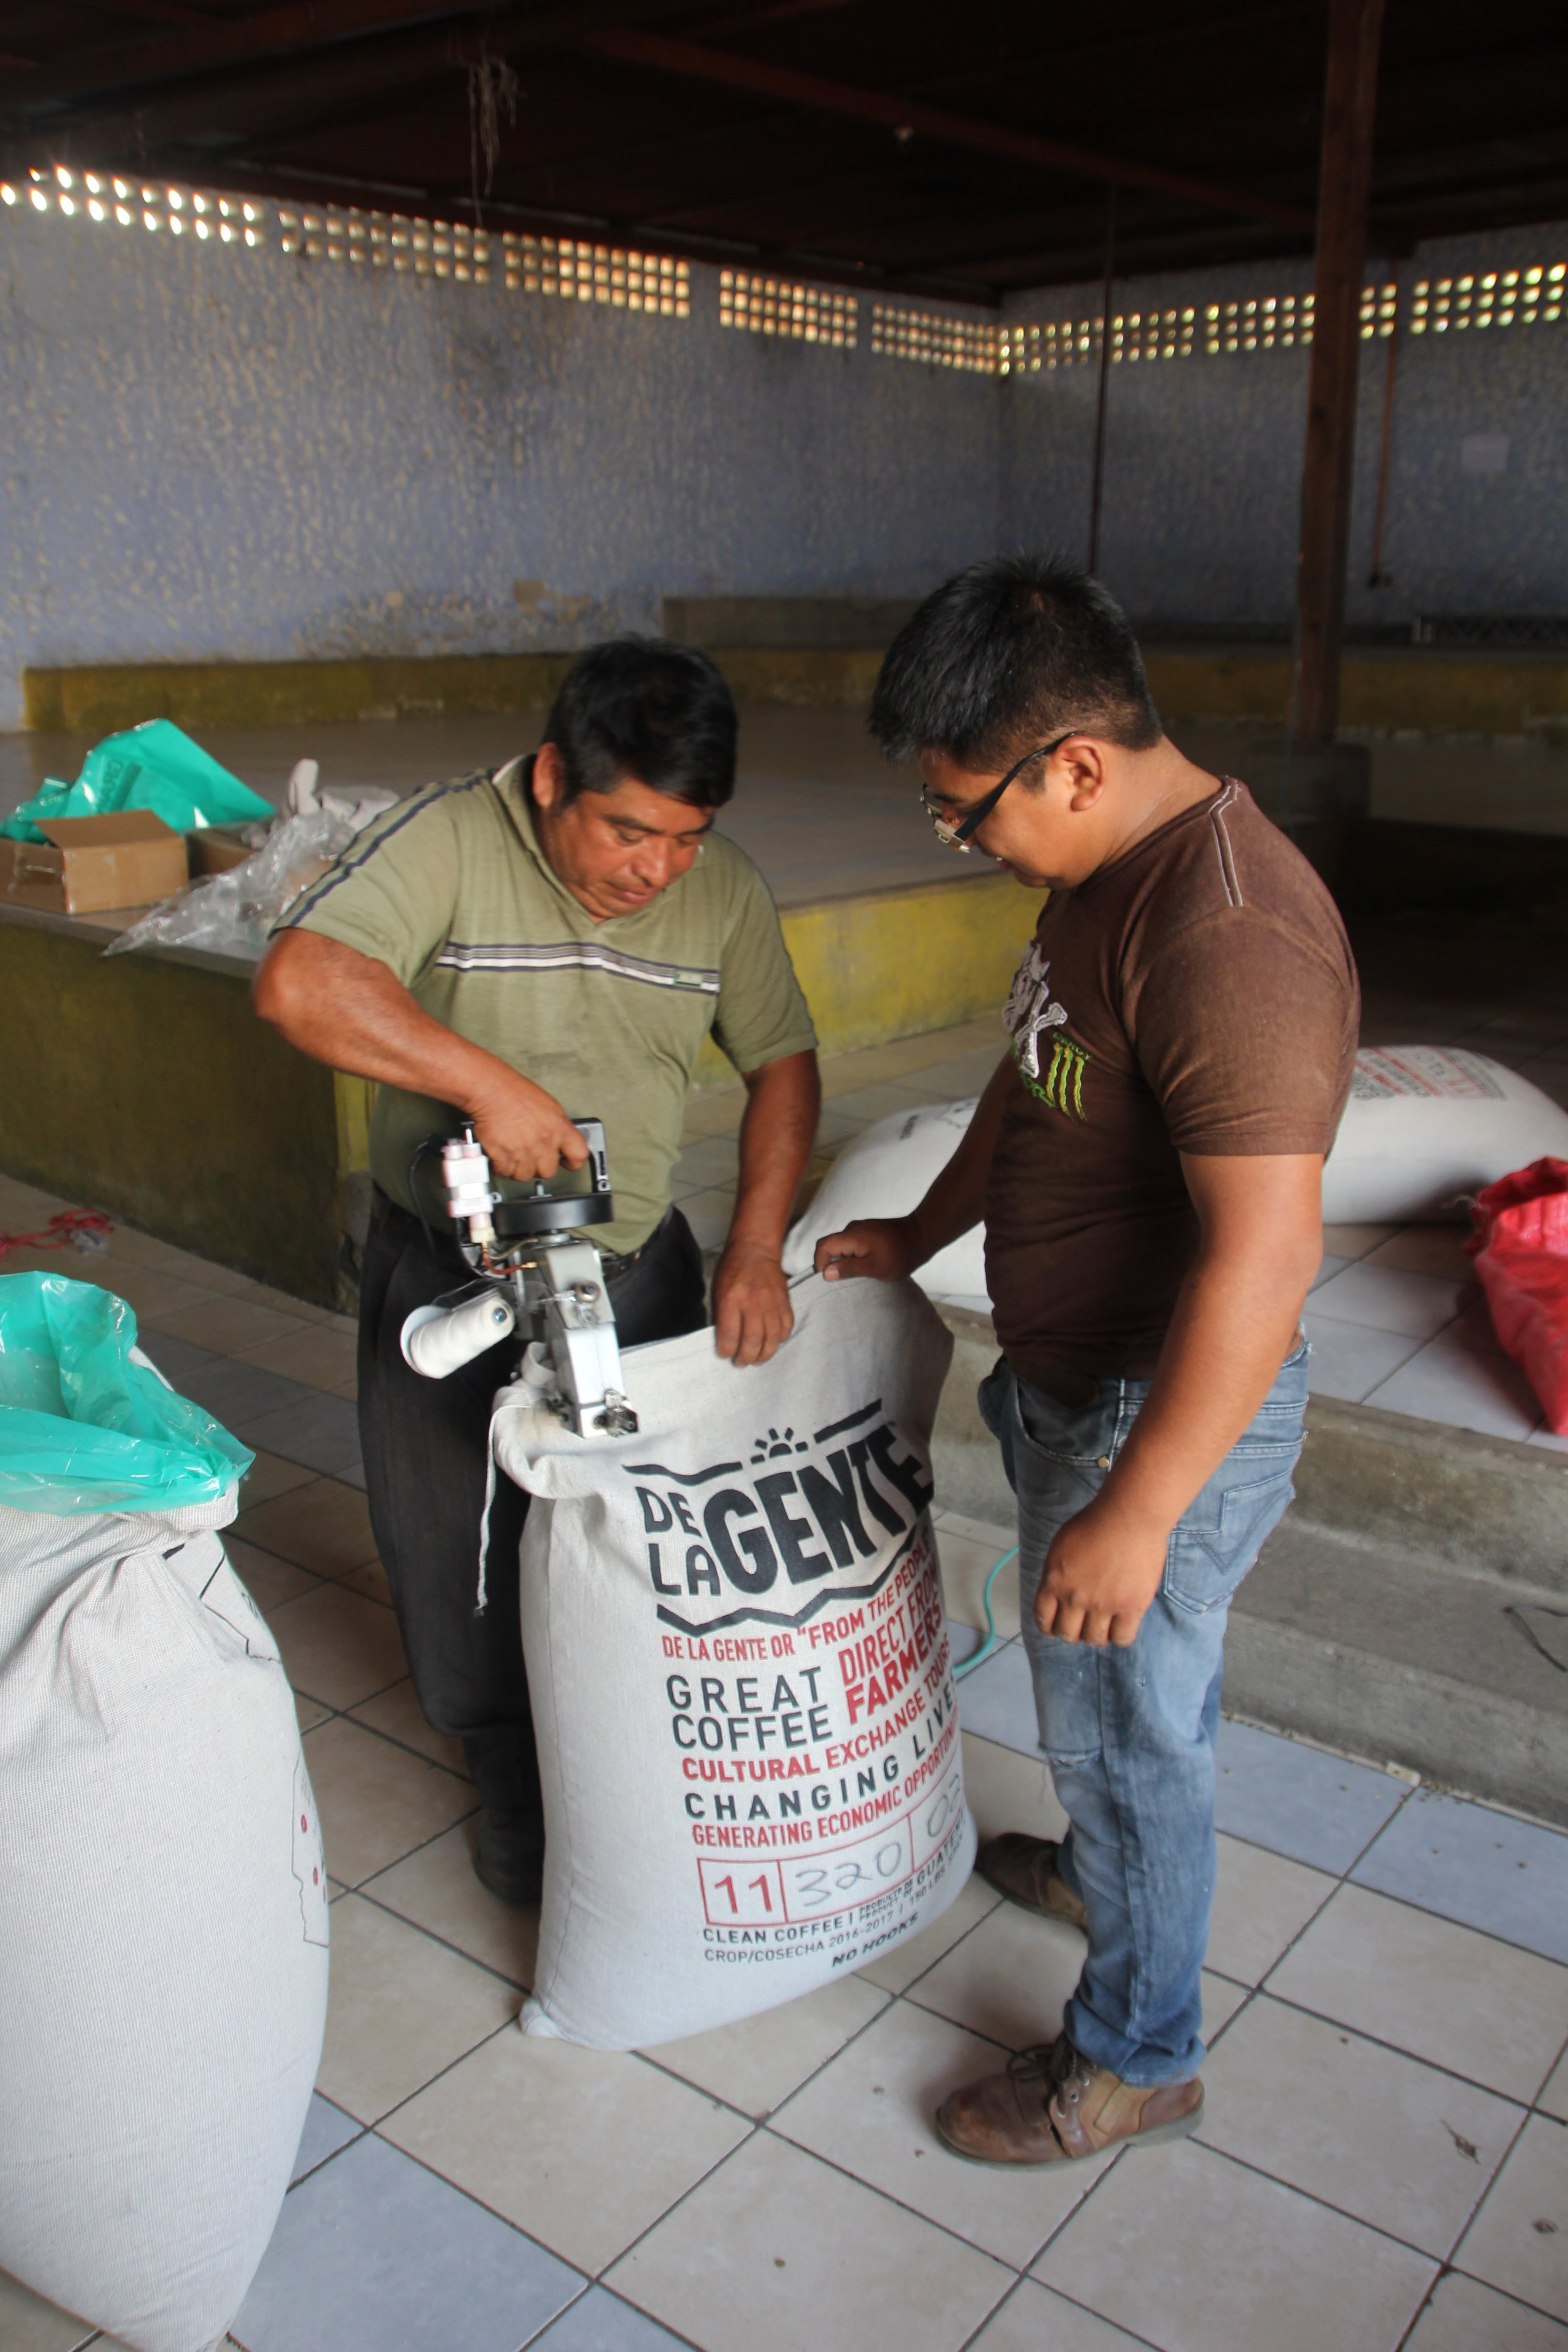 Fredy and his son sewing the bags shut, the final step in the bagging process